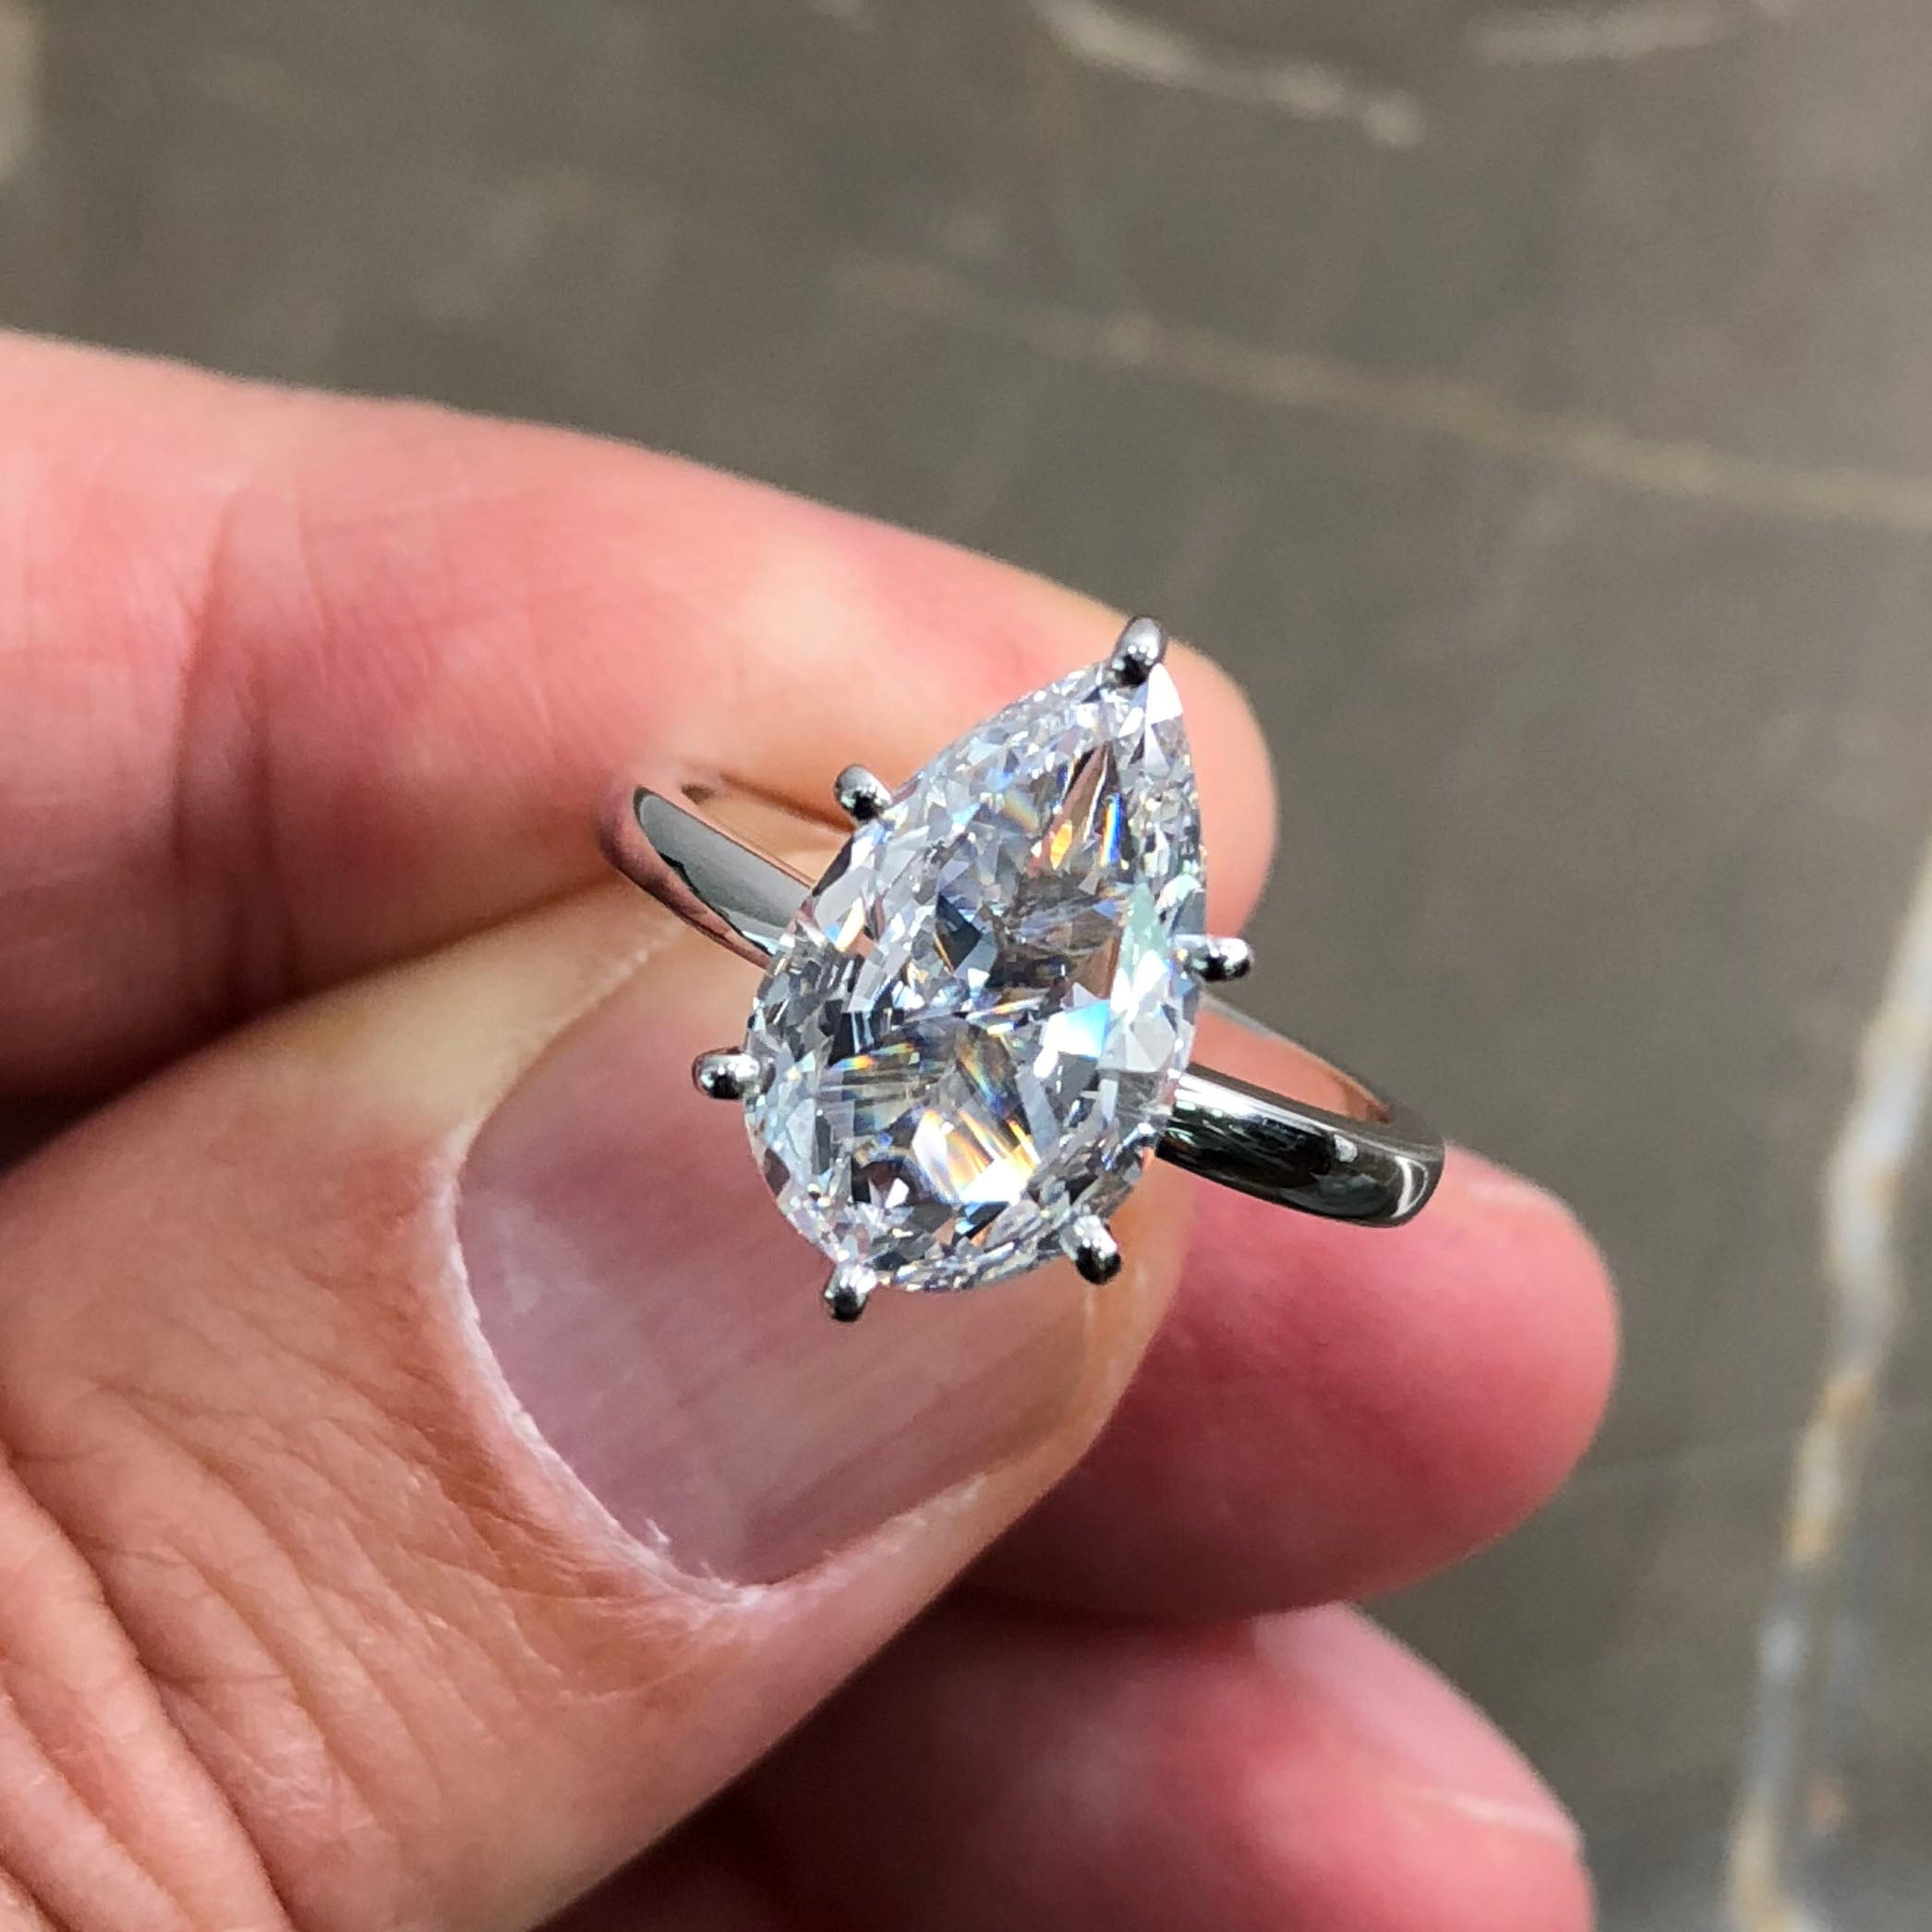 5 Carat Pear Shaped F VS2 Diamond Solitaire Engagement Ring - 14K White Gold #J99151